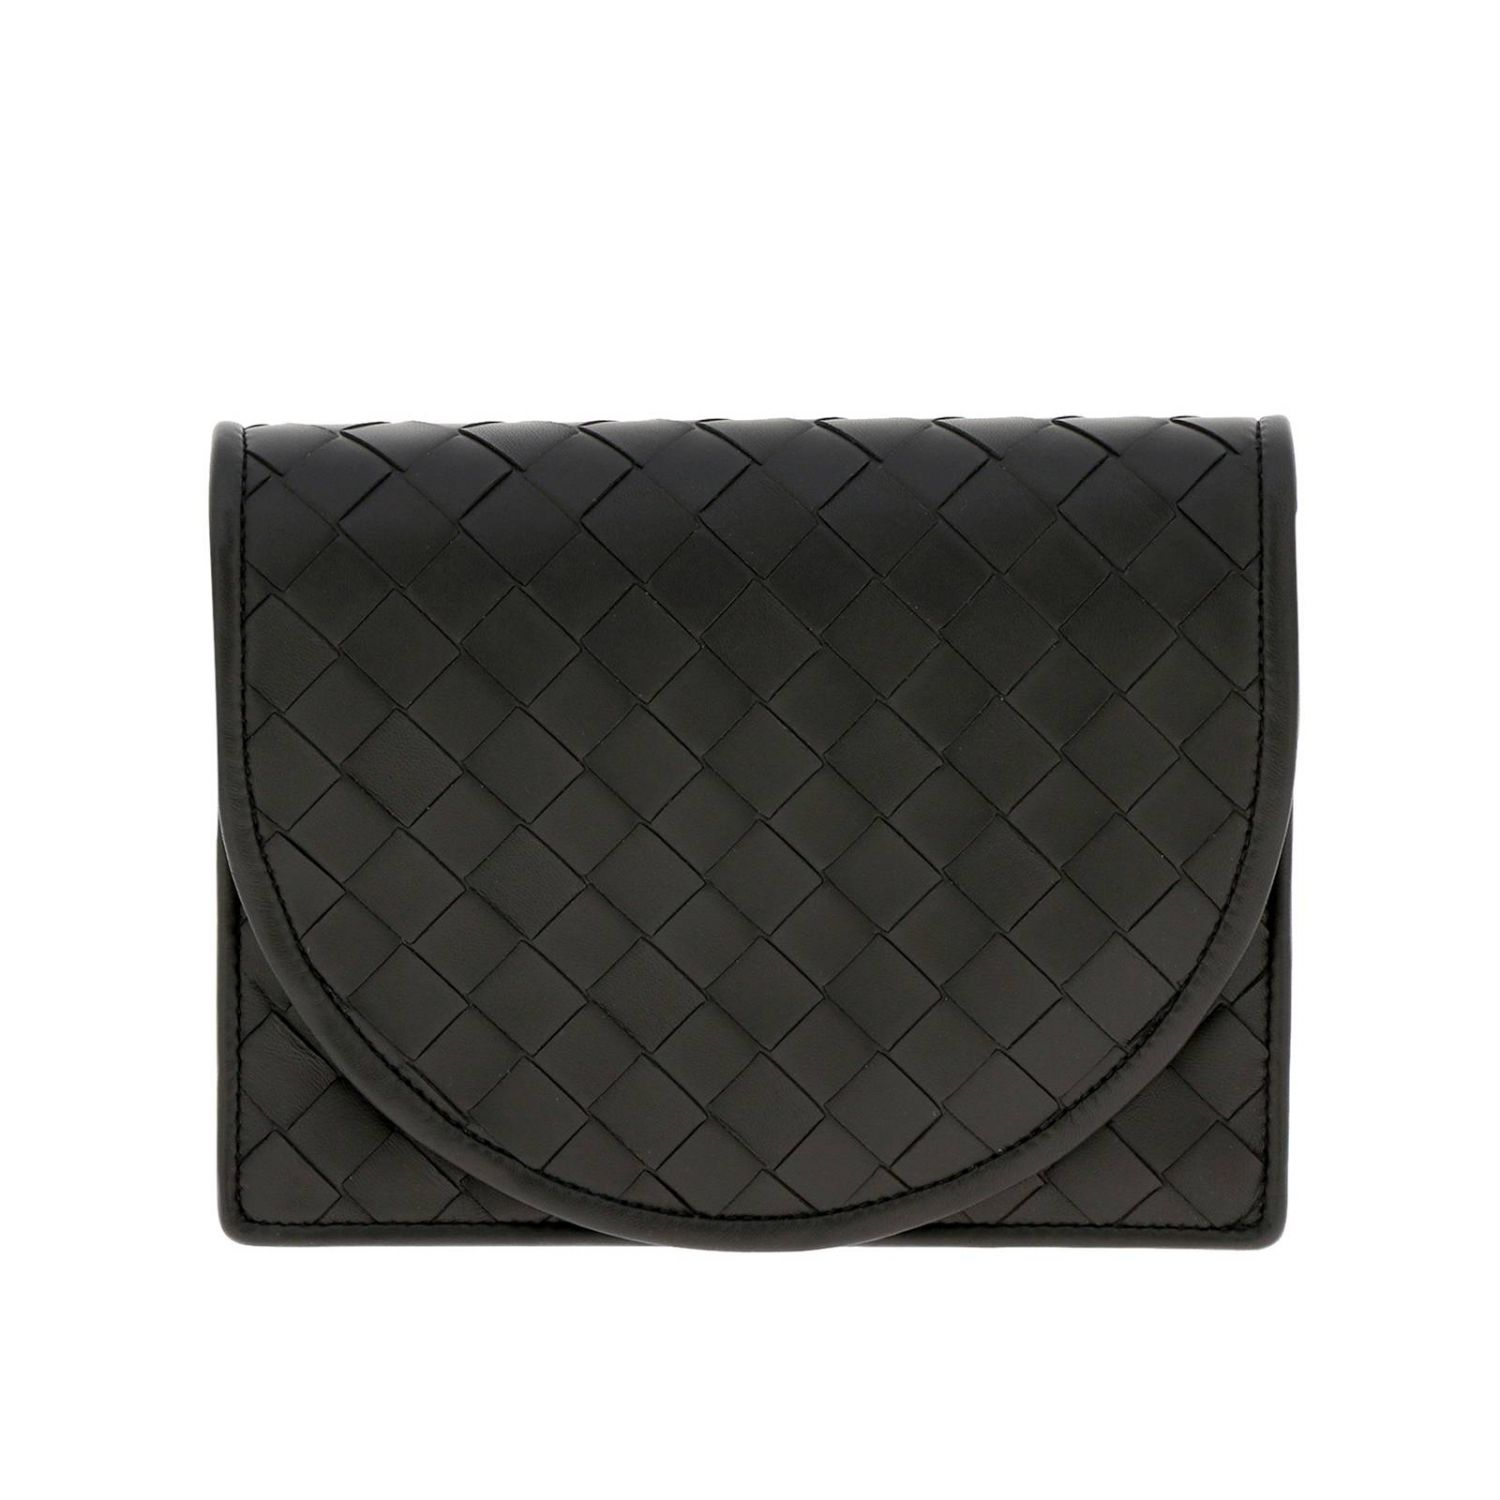 Bottega Veneta shoulder bag in leather with maxi weave black 1